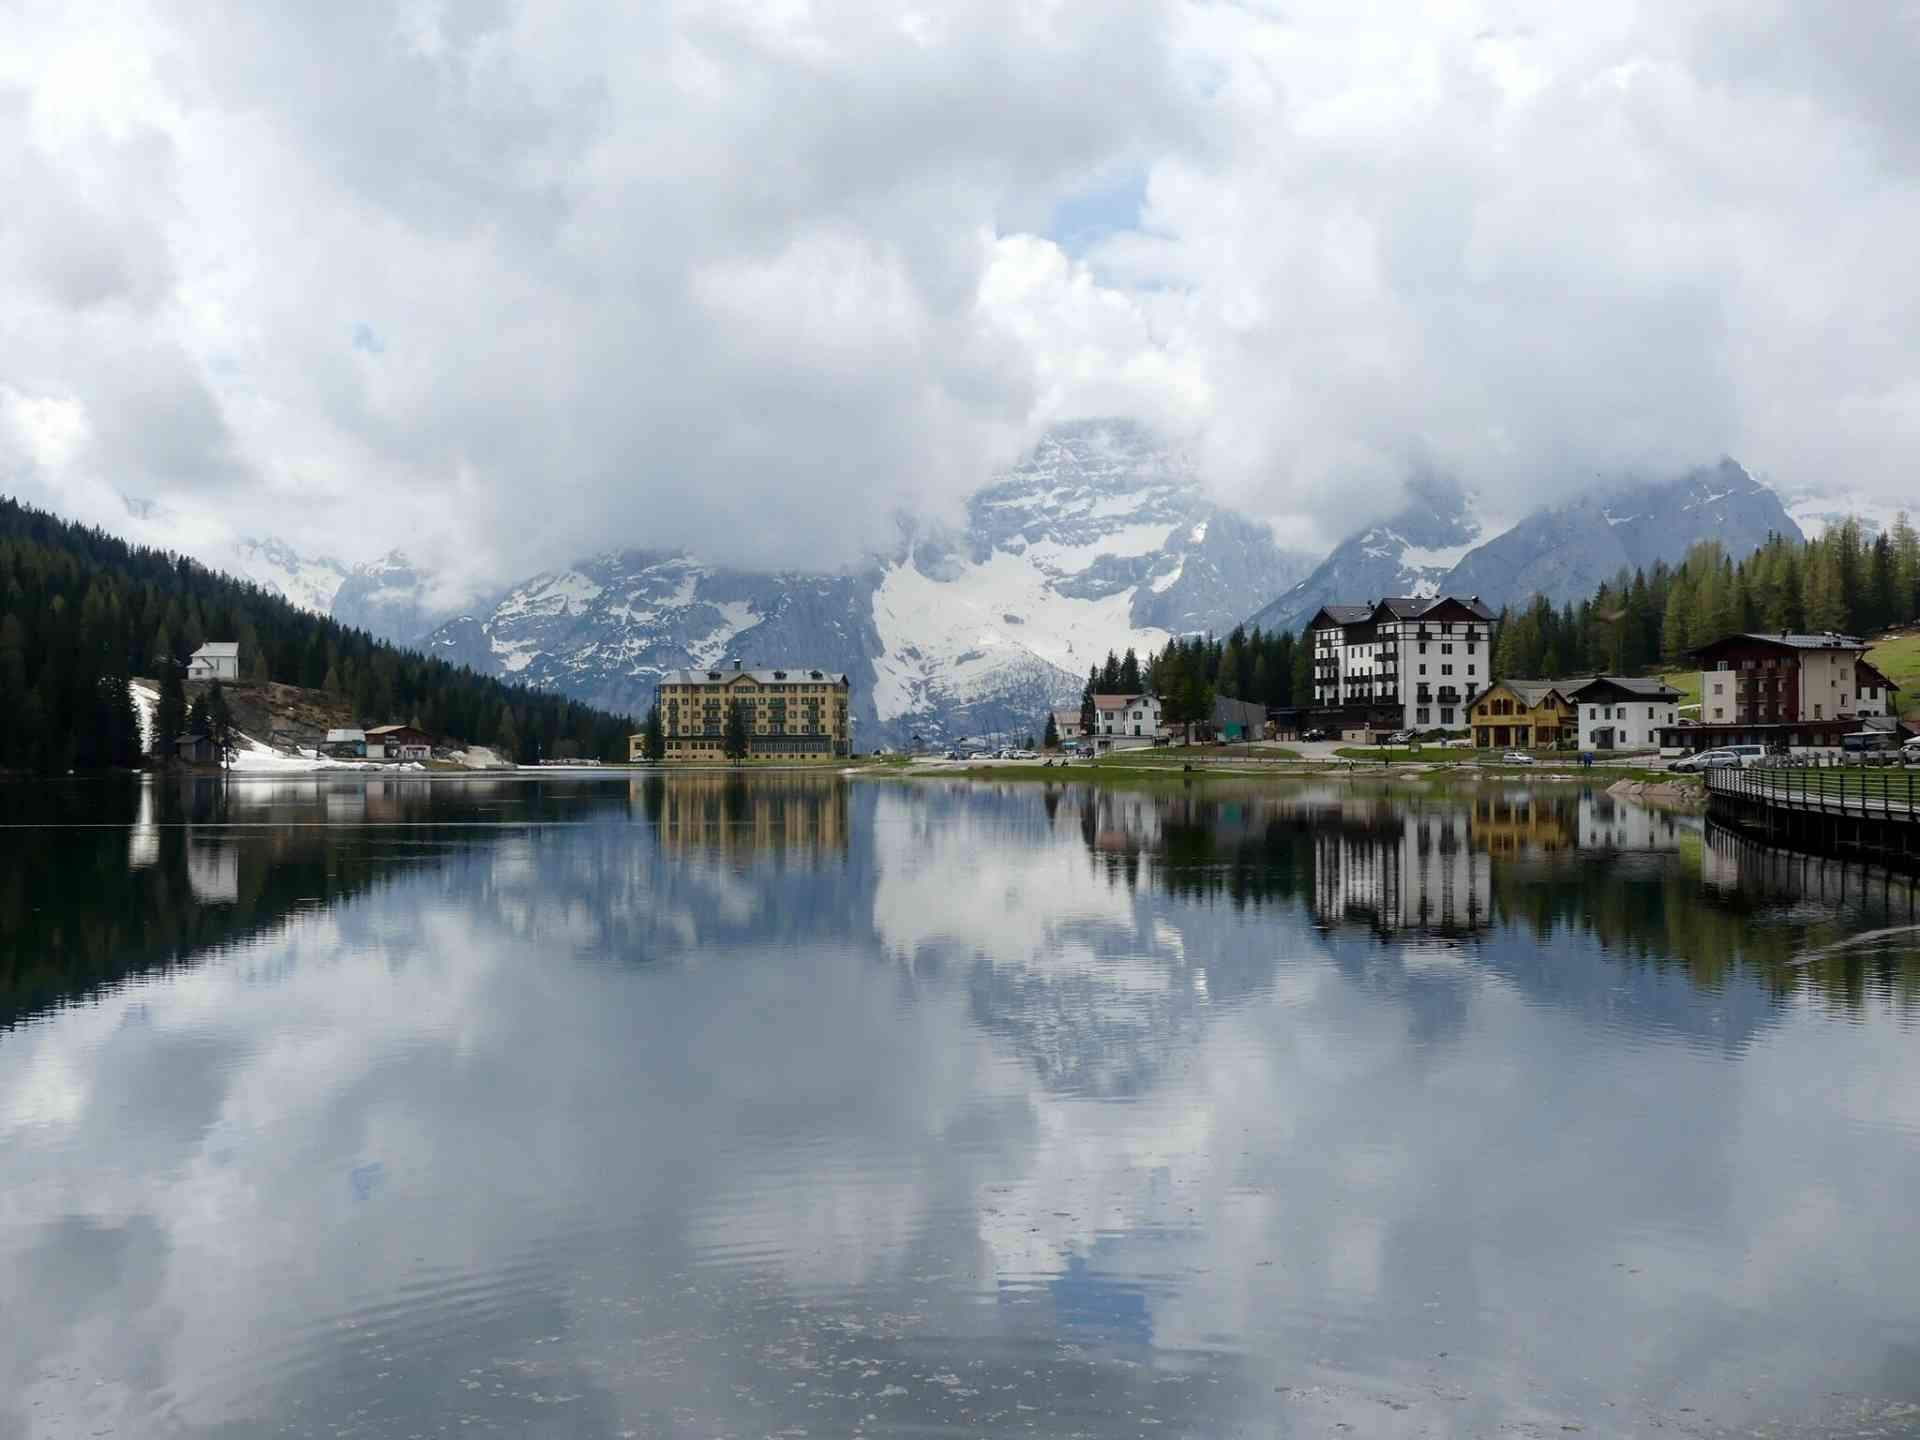 Congratulations to our March 2019 winner Janice S for this amazing shot of Lake Misurina in Italy! Simply beautiful.